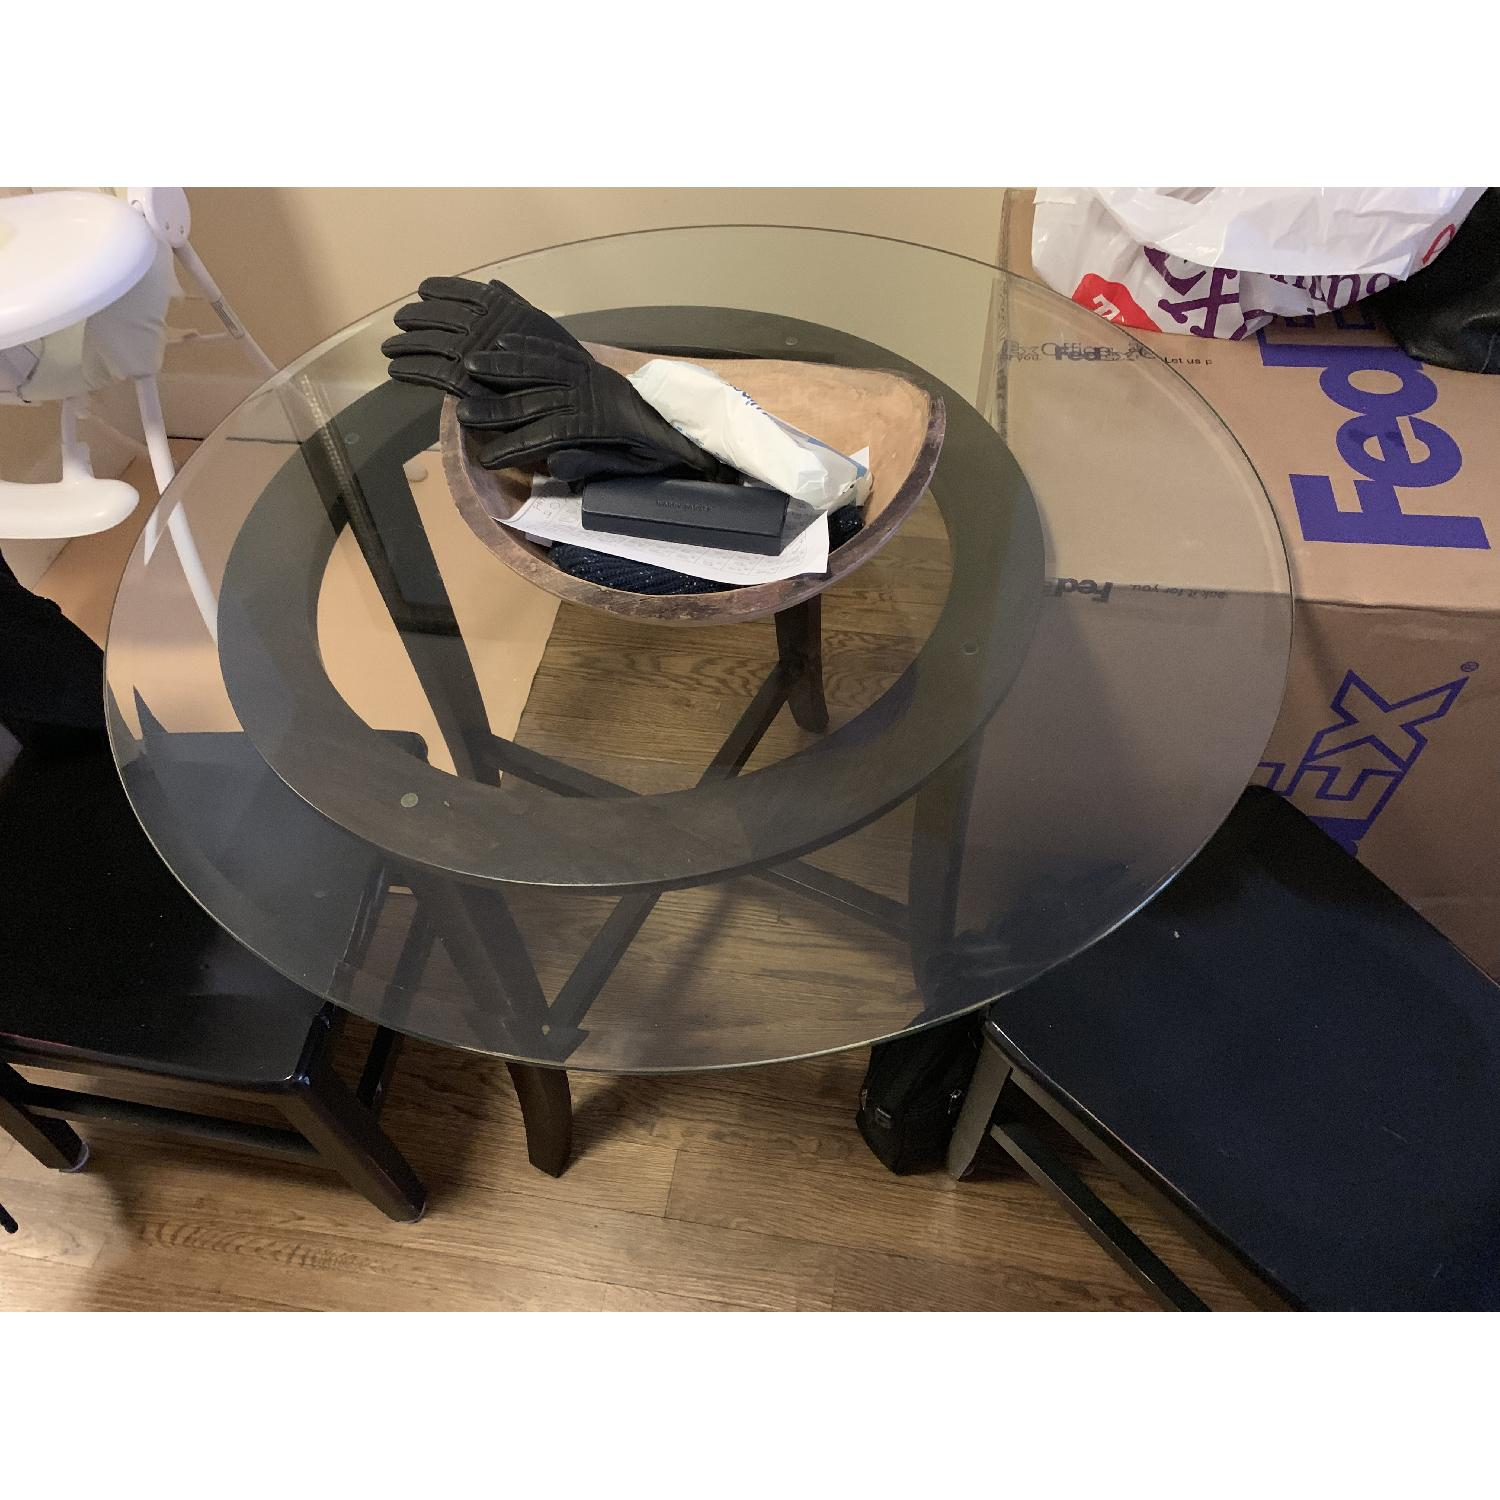 Crate & Barrel Halo Ebony Glass Top Dining Table w/ 2 Chairs-1